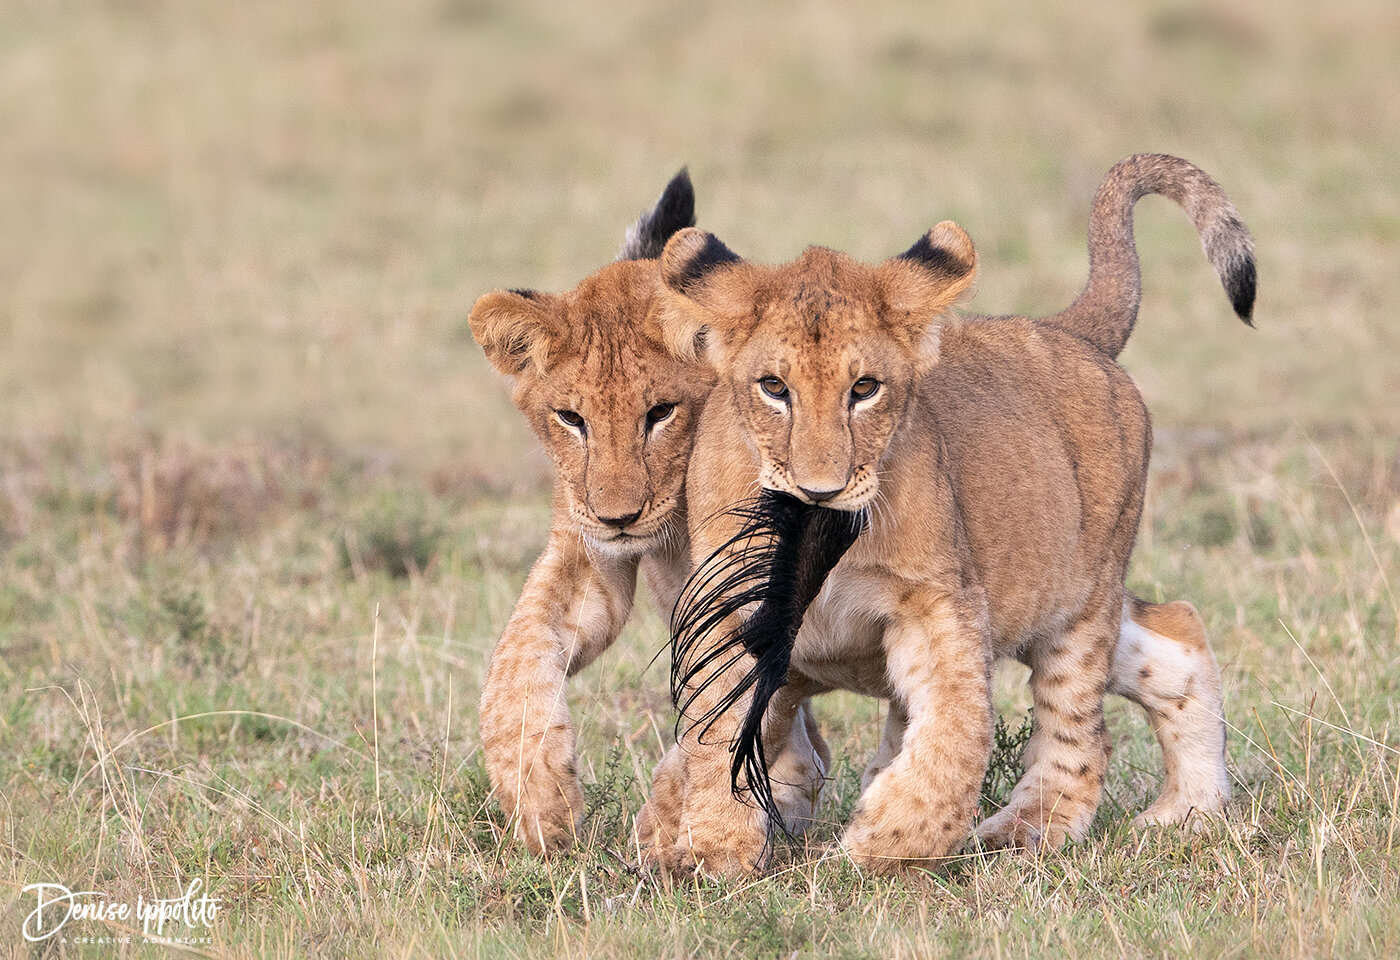 A zebra part was fun for this cub to play with. He enjoyed parading around with it and having his siblings chase him.